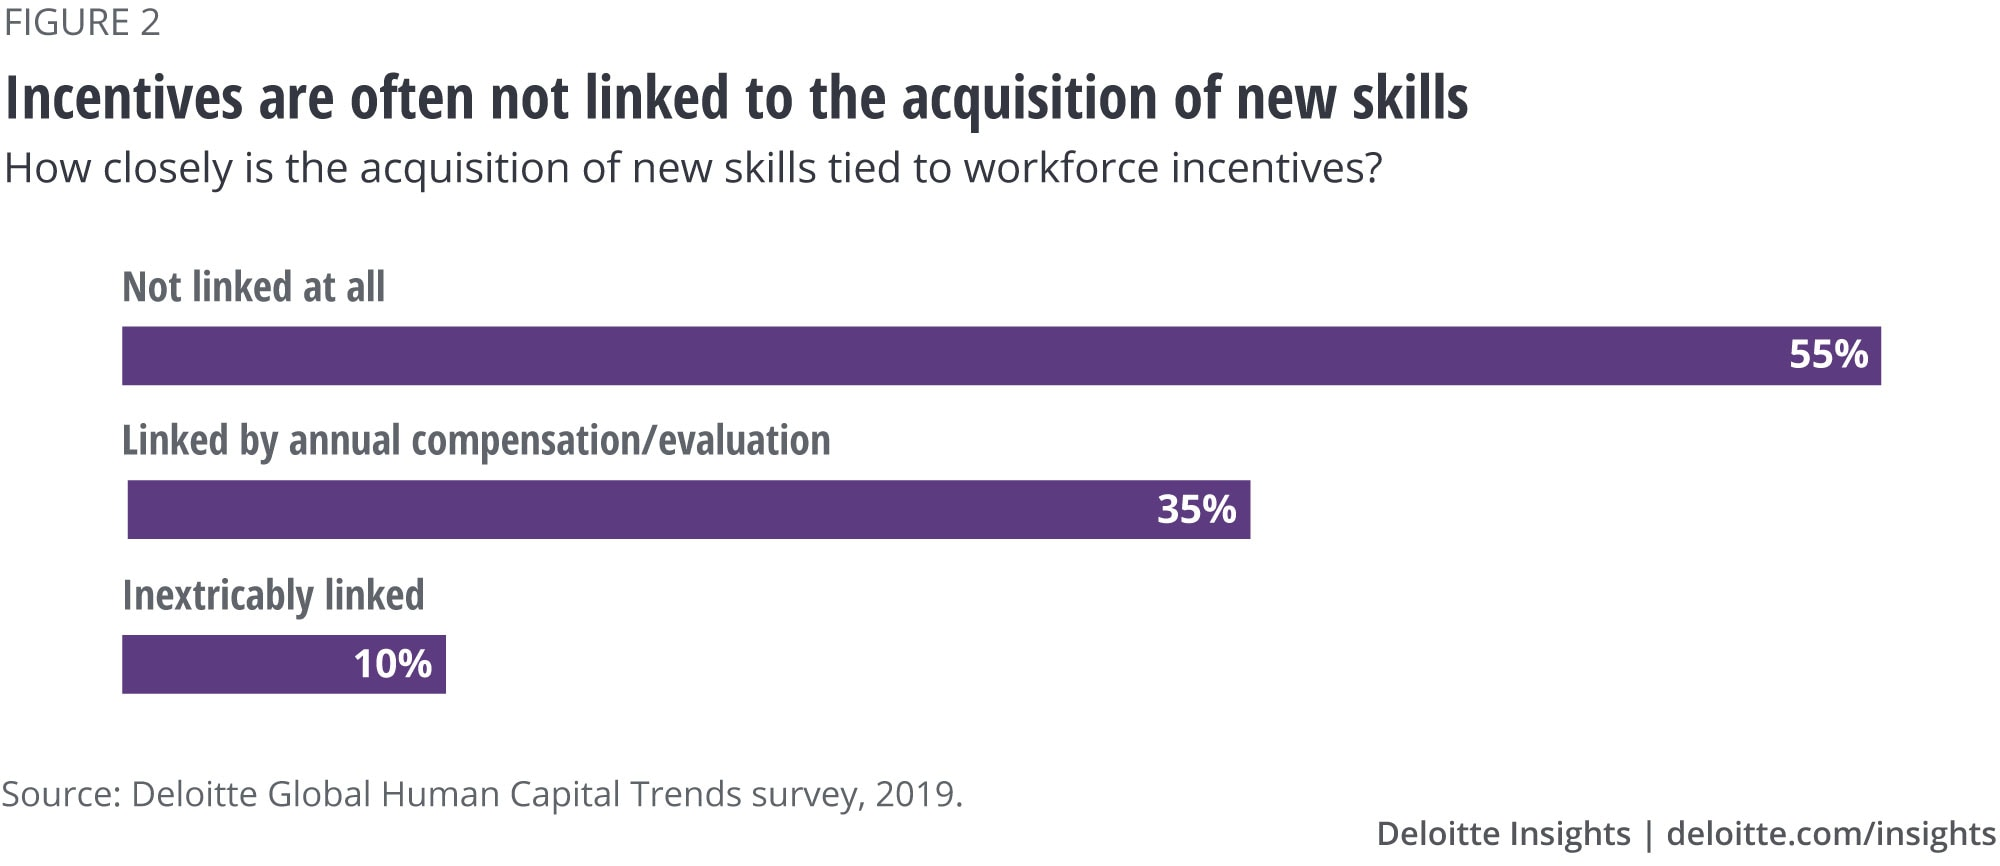 Incentives are often not linked to the acquisition of new skills